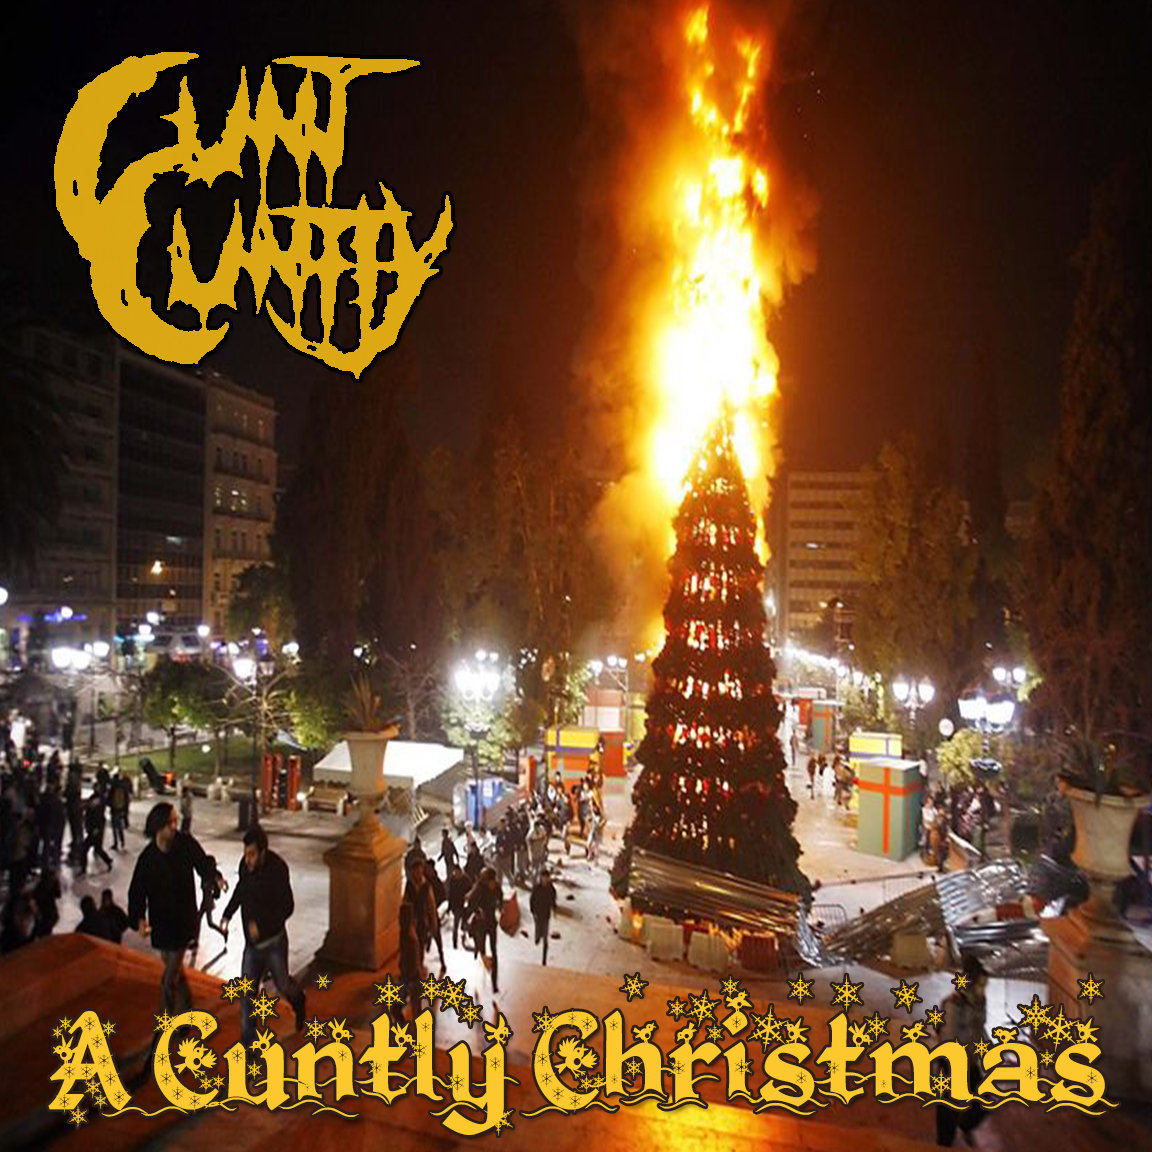 Eagles Please Come Home For Christmas.Please Come Home For Christmas Eagles Cover Cunt Cuntly